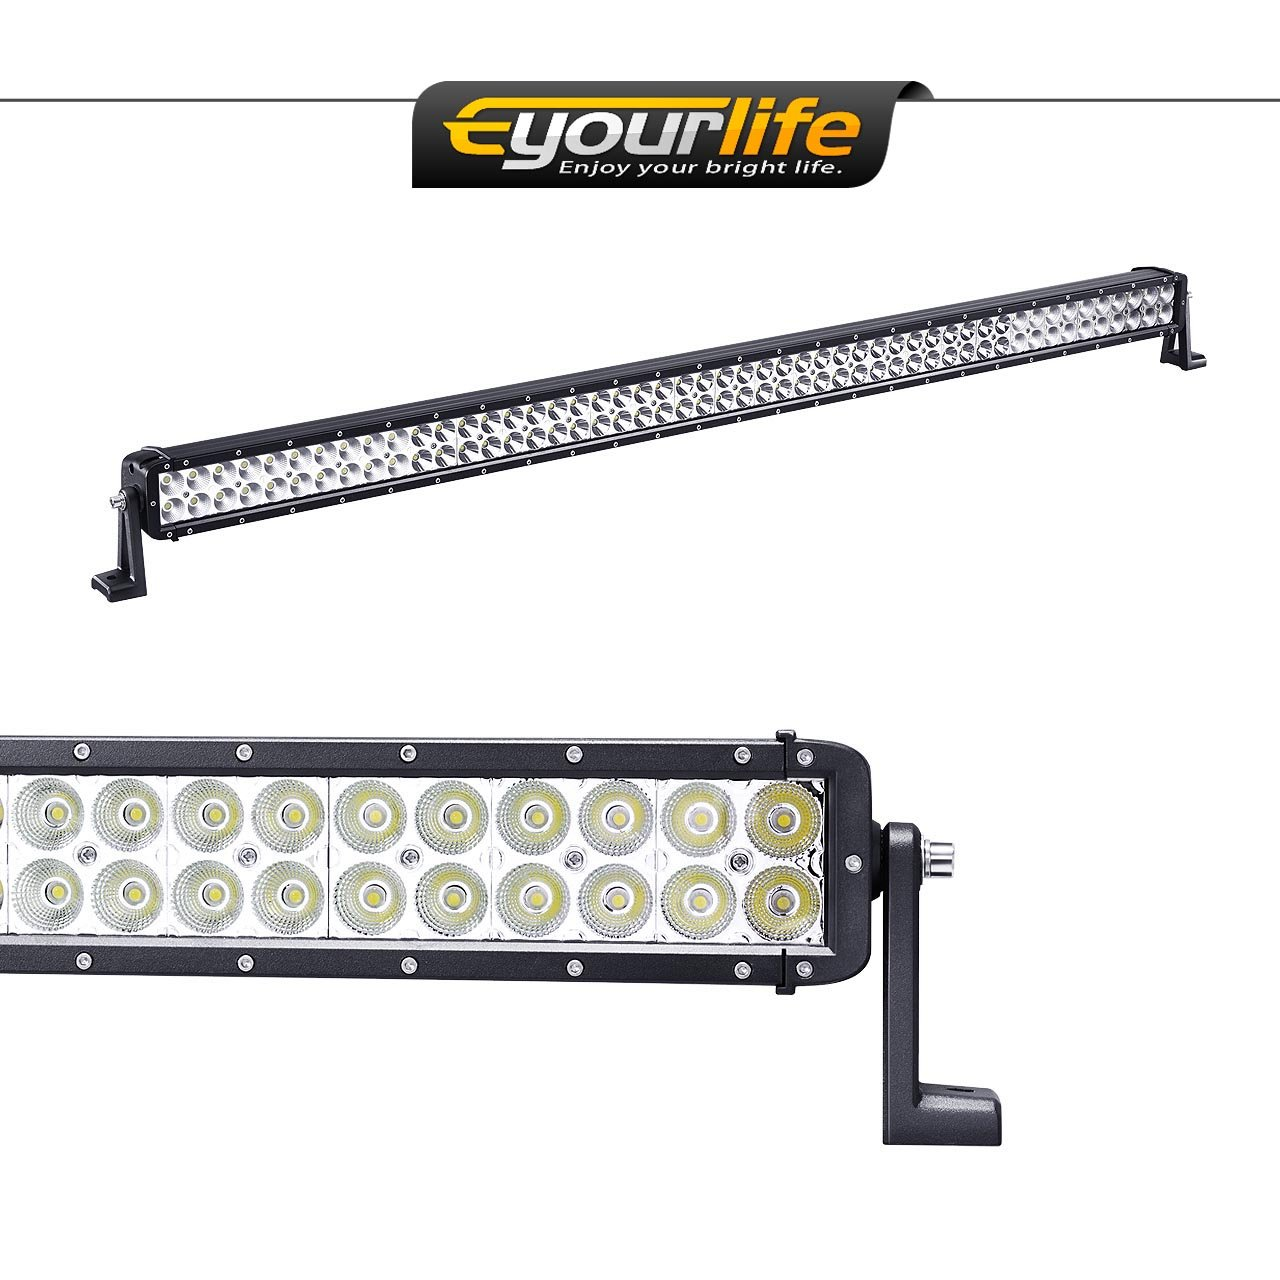 "Eyourlife Off Road Extra 52"" Light Bar 300W Flood Spot Combo Beam"